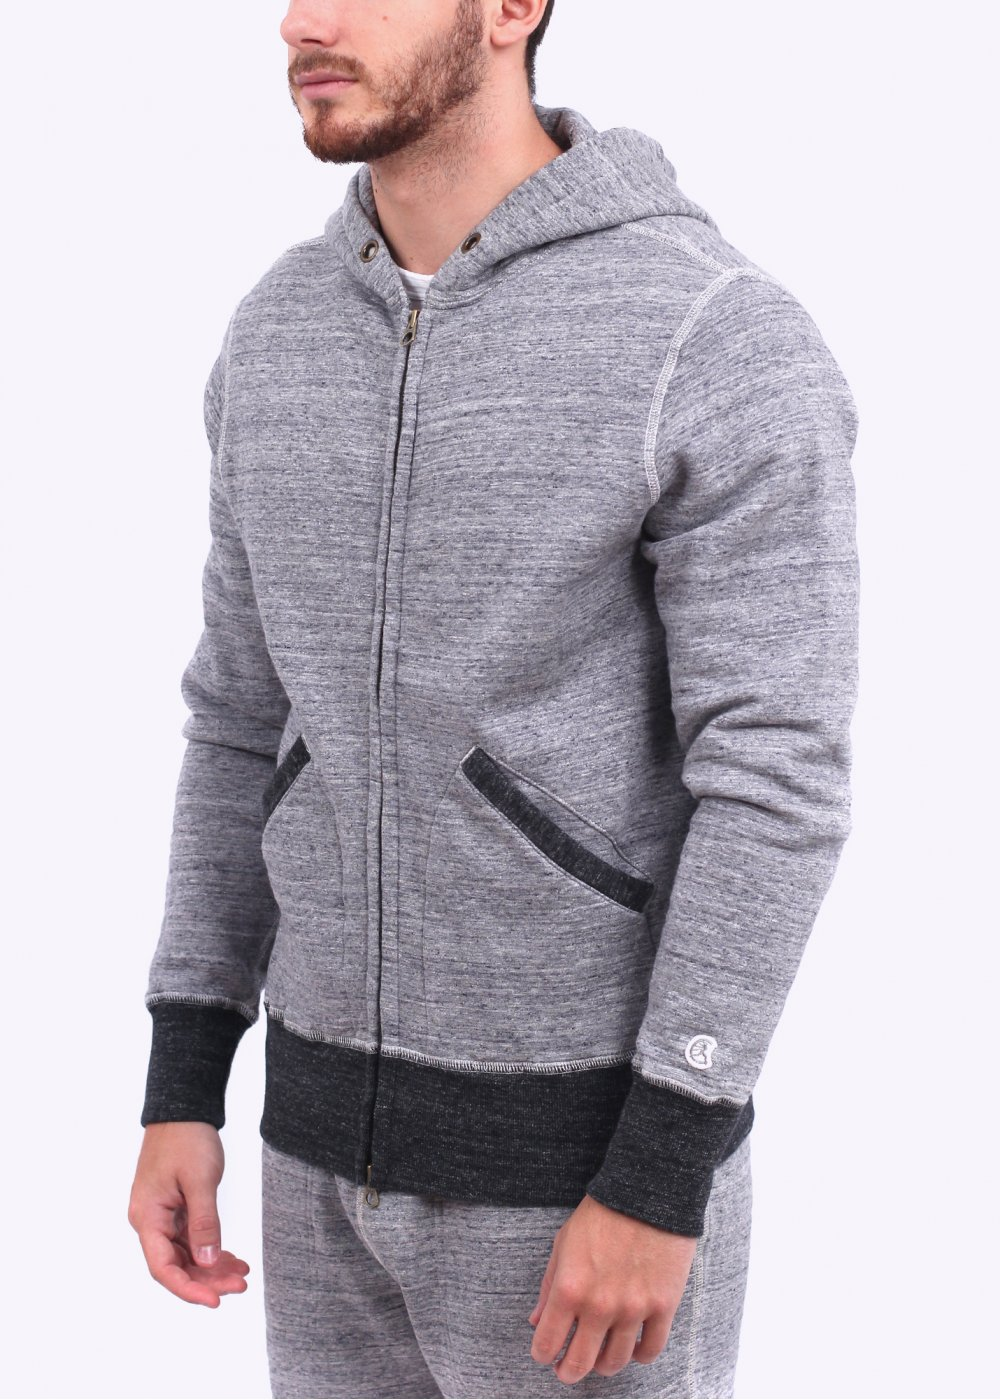 58d198aa0019 todd snyder champion hoodie Sale